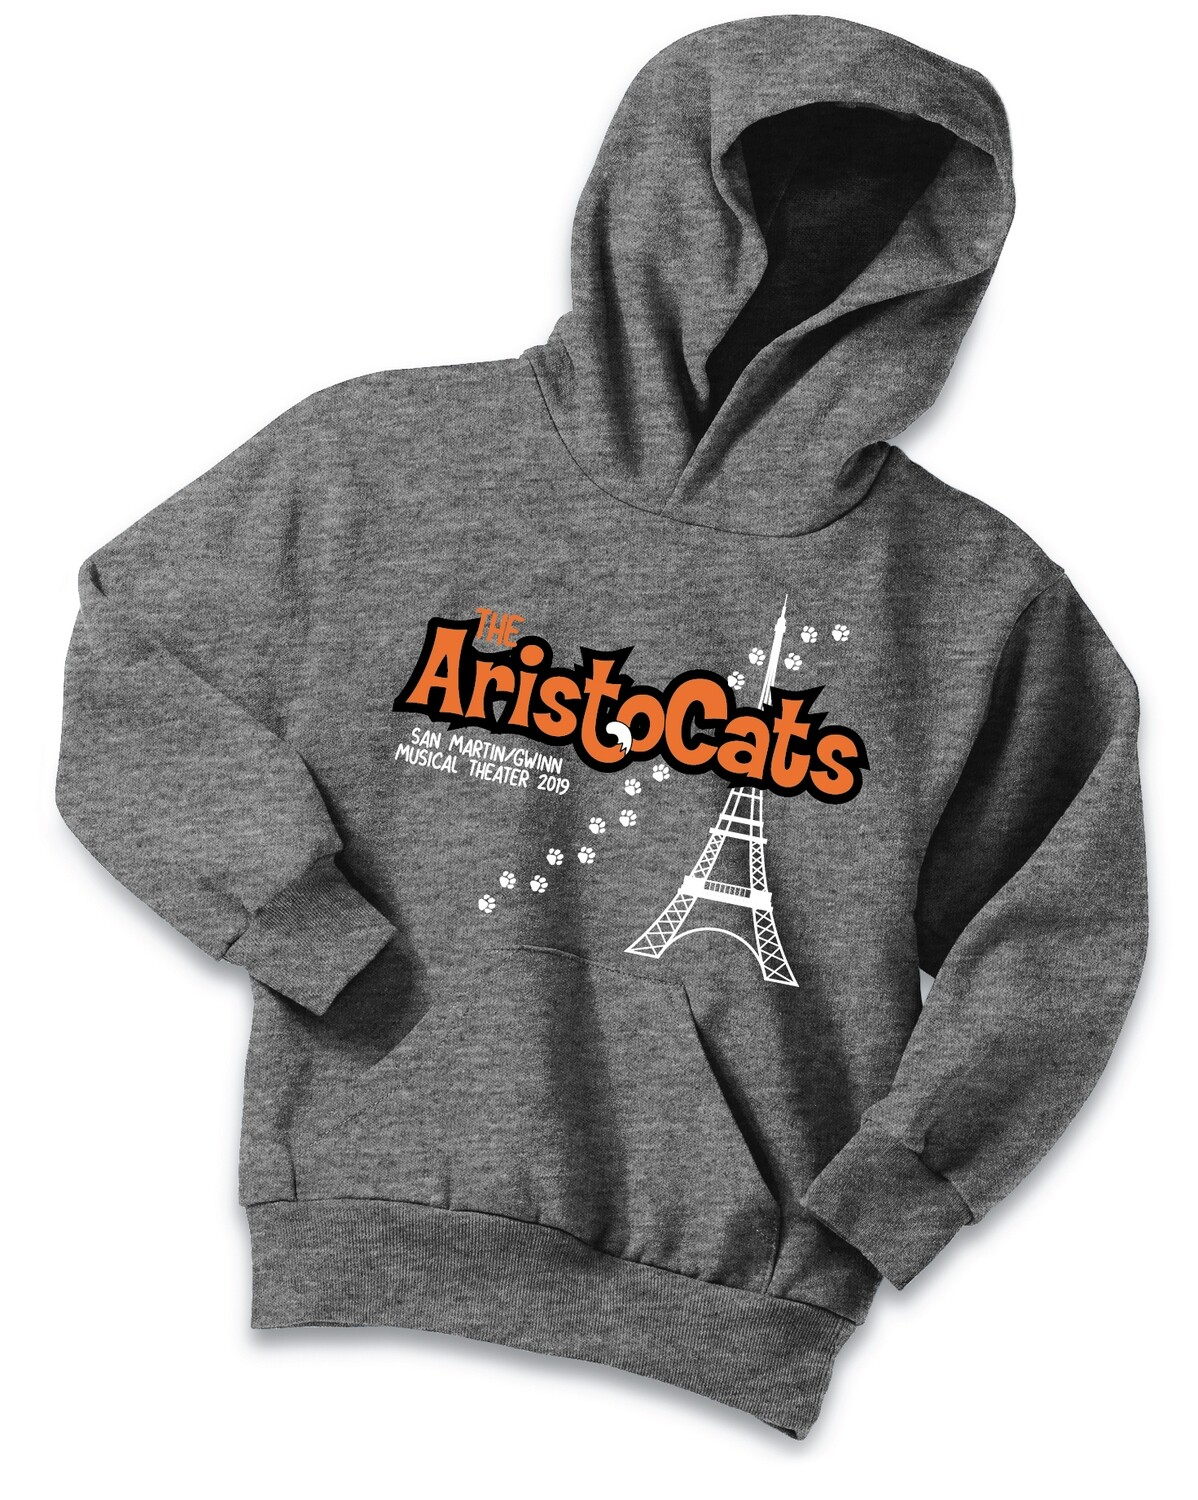 Aristocats Apparel